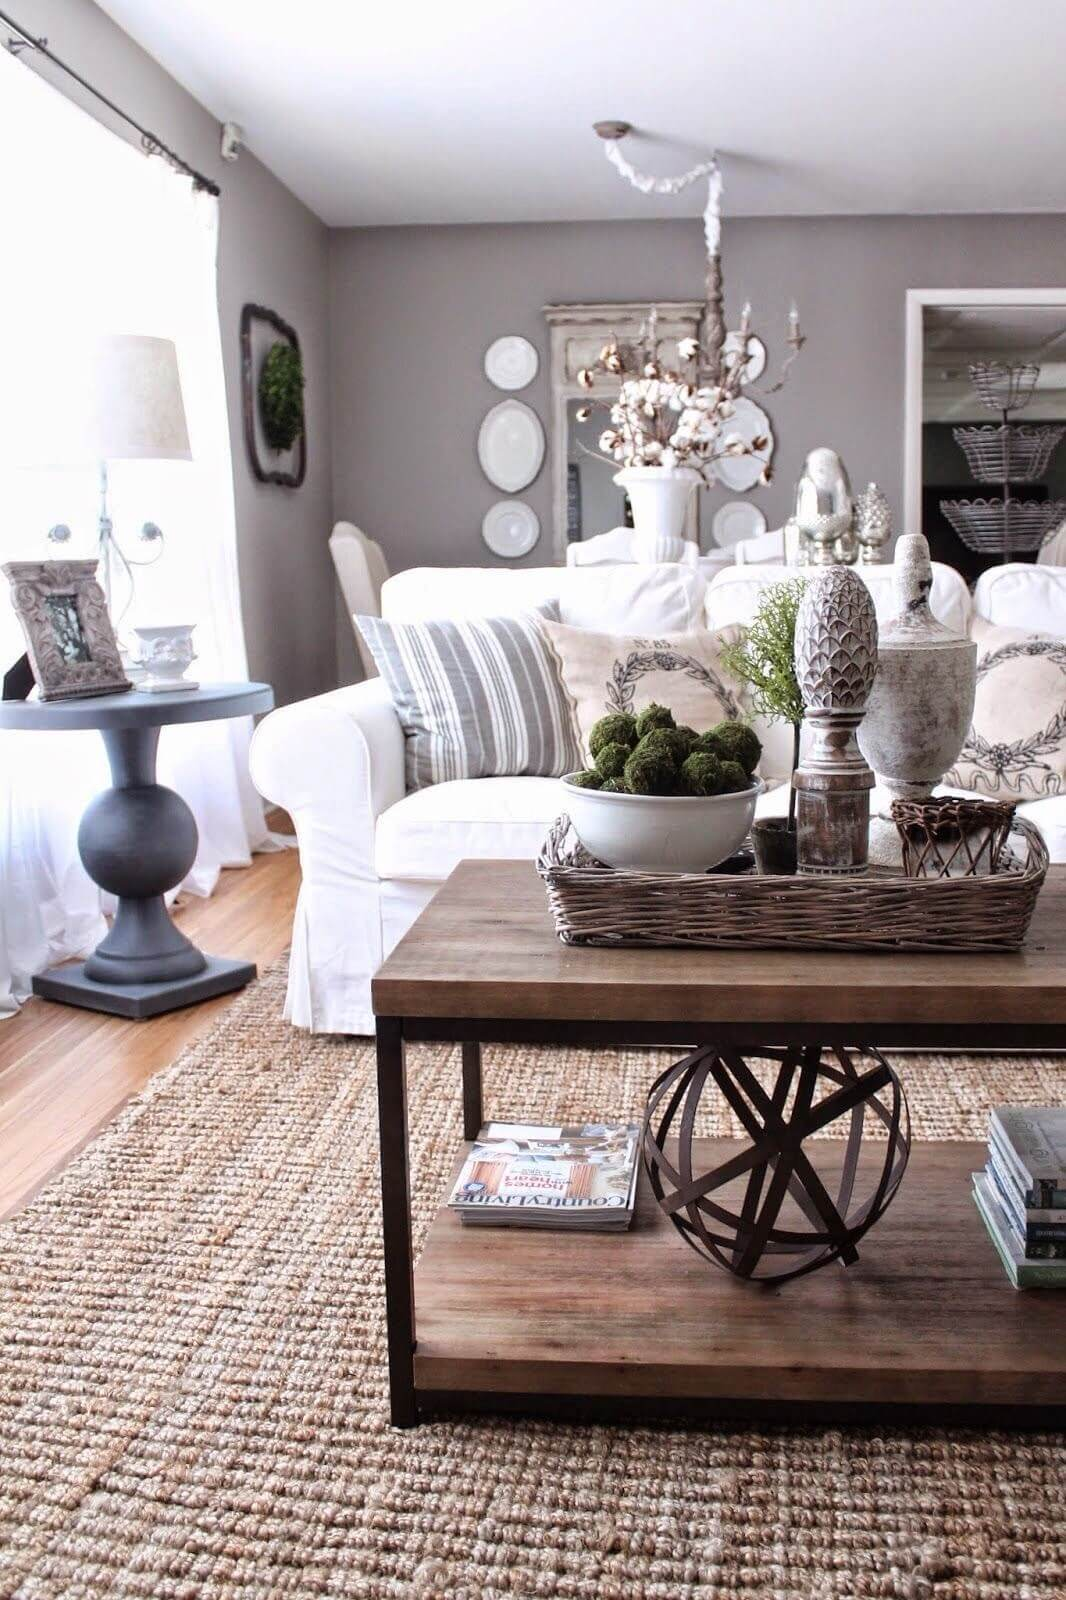 Best Coffee Table for Farmhouse Room